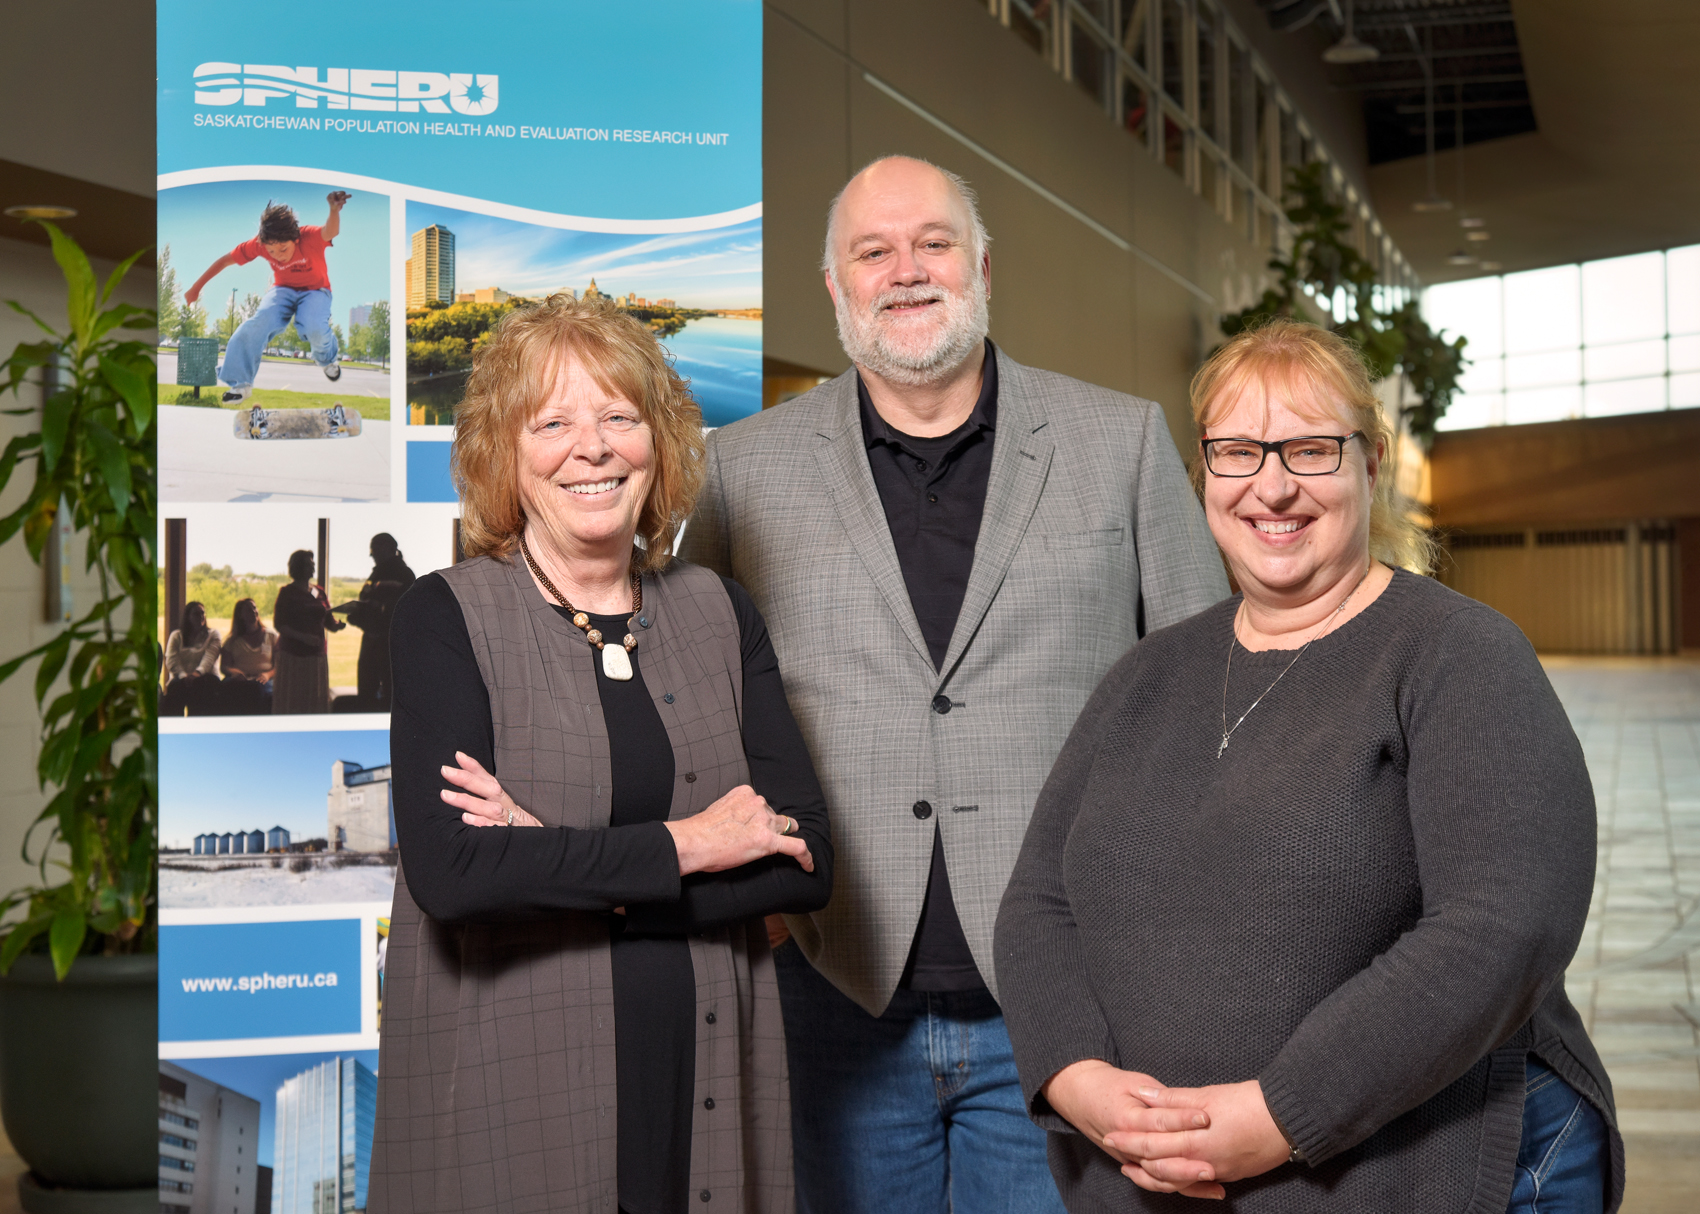 Research team Bonnie Jeffery, Tom McIntosh, and Nuelle Novik received $3 million in federal funding for their dementia-focused research project. (Photo by Trevor Hopkin)